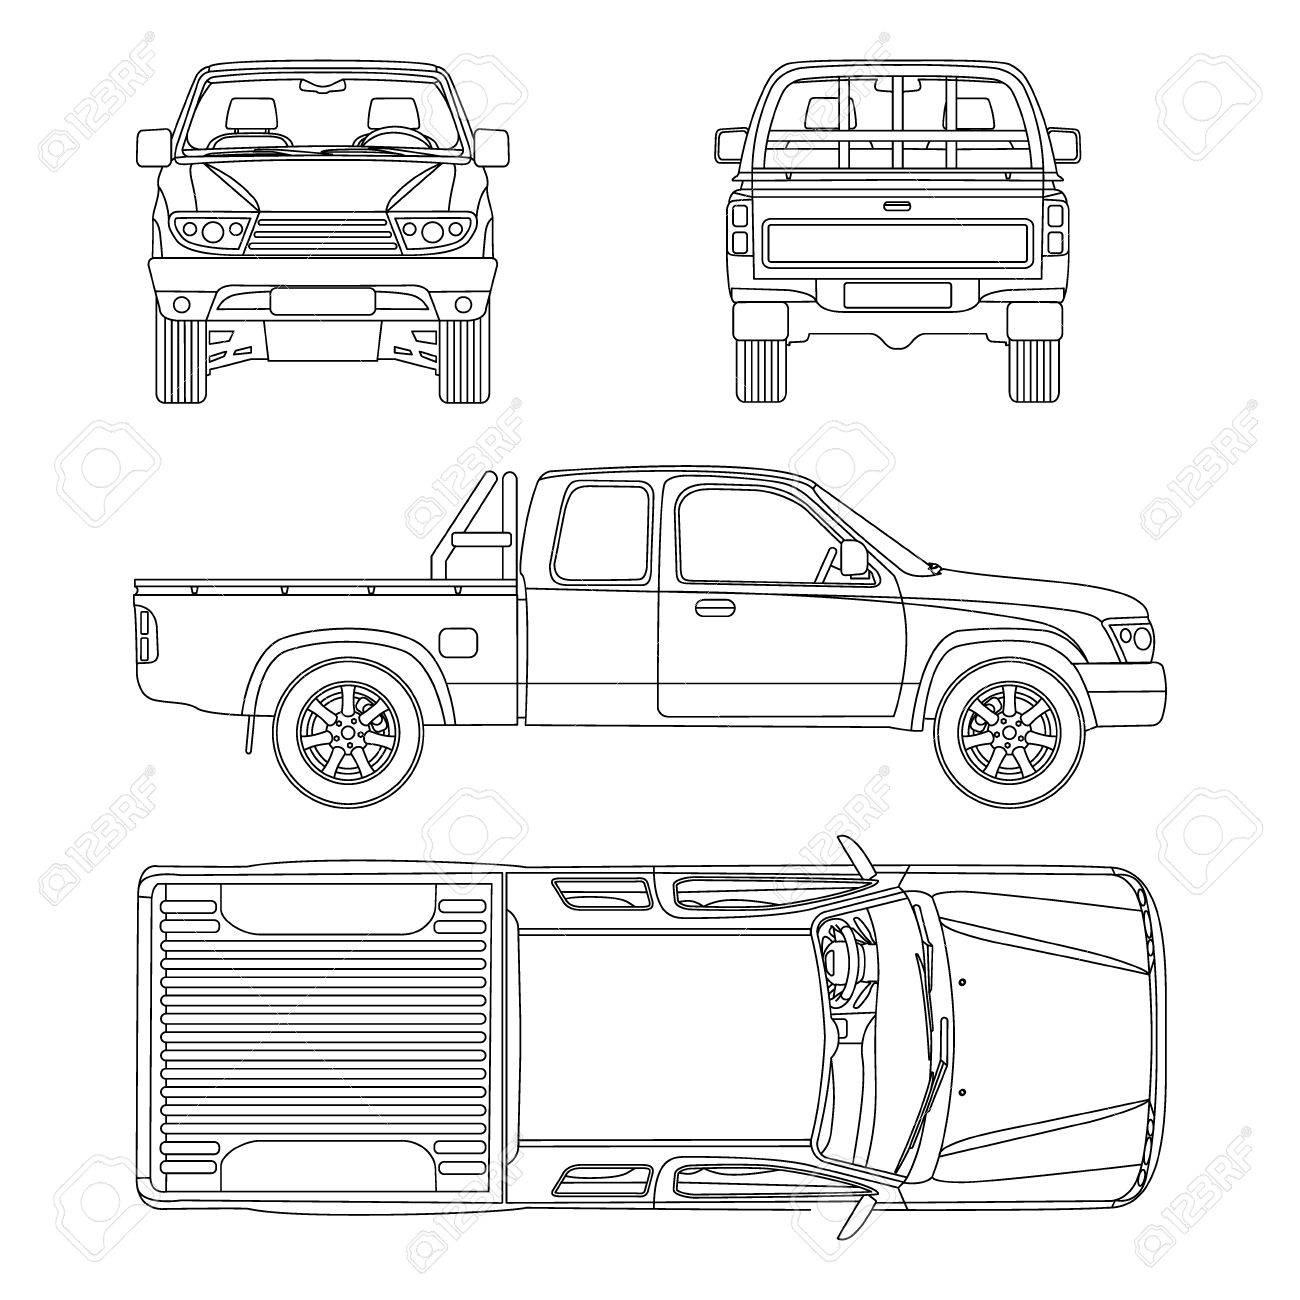 Pickup truck illustration blueprint royalty free cliparts vectors pickup truck illustration blueprint stock vector 55832522 malvernweather Image collections